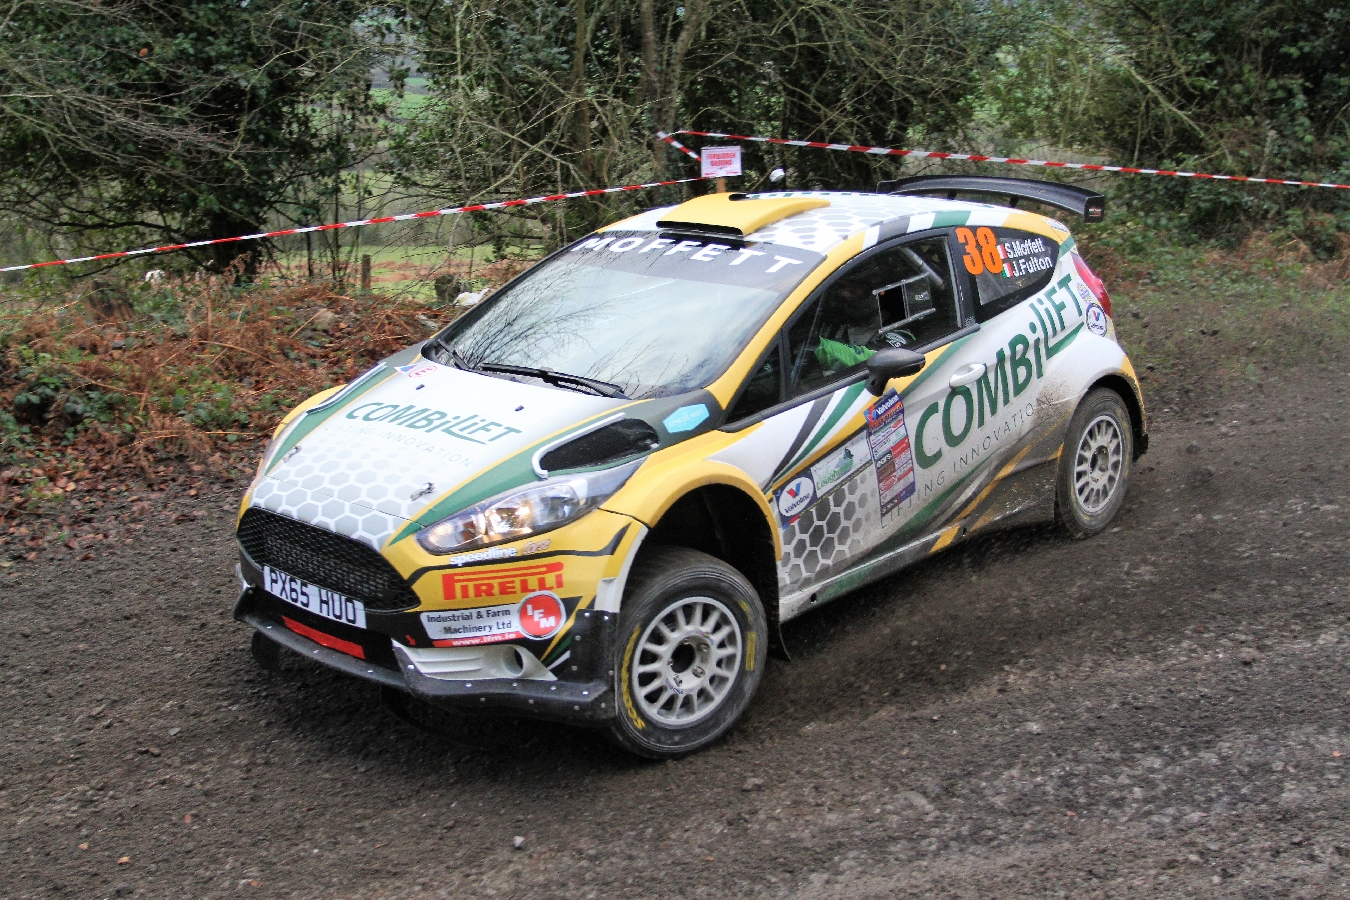 Forest Finale In Omagh Forests! 2017 Valvoline Motorsport Ireland National Forest Rally Championship-Round Six